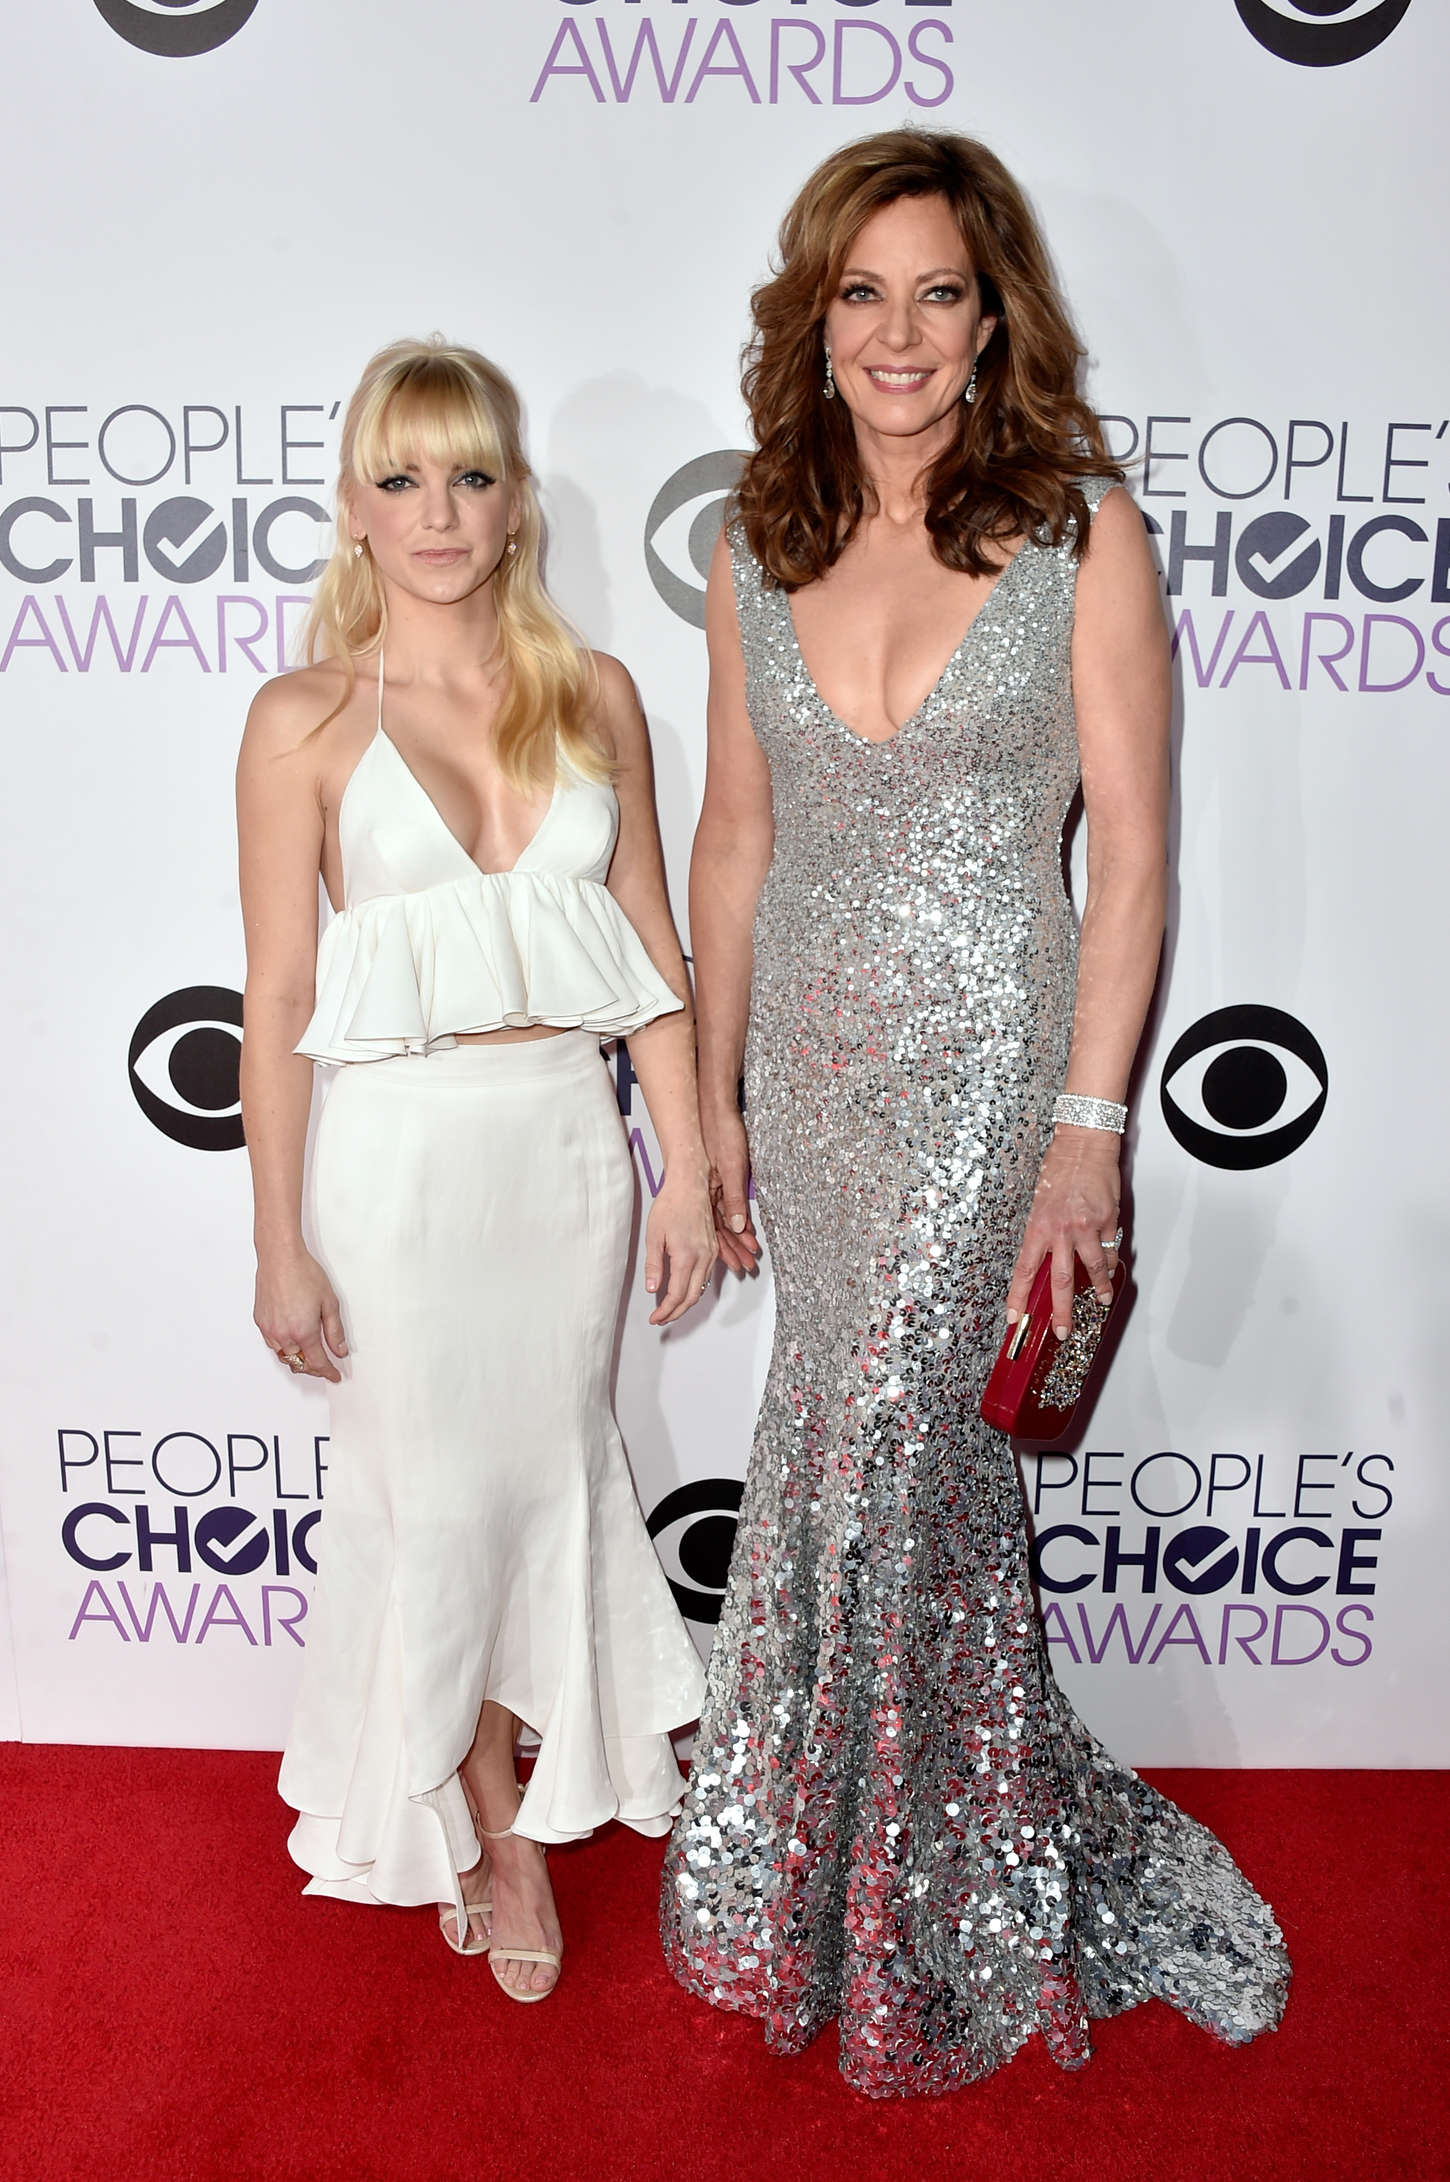 Anna Faris Annual Peoples Choice Awards in Los Angeles